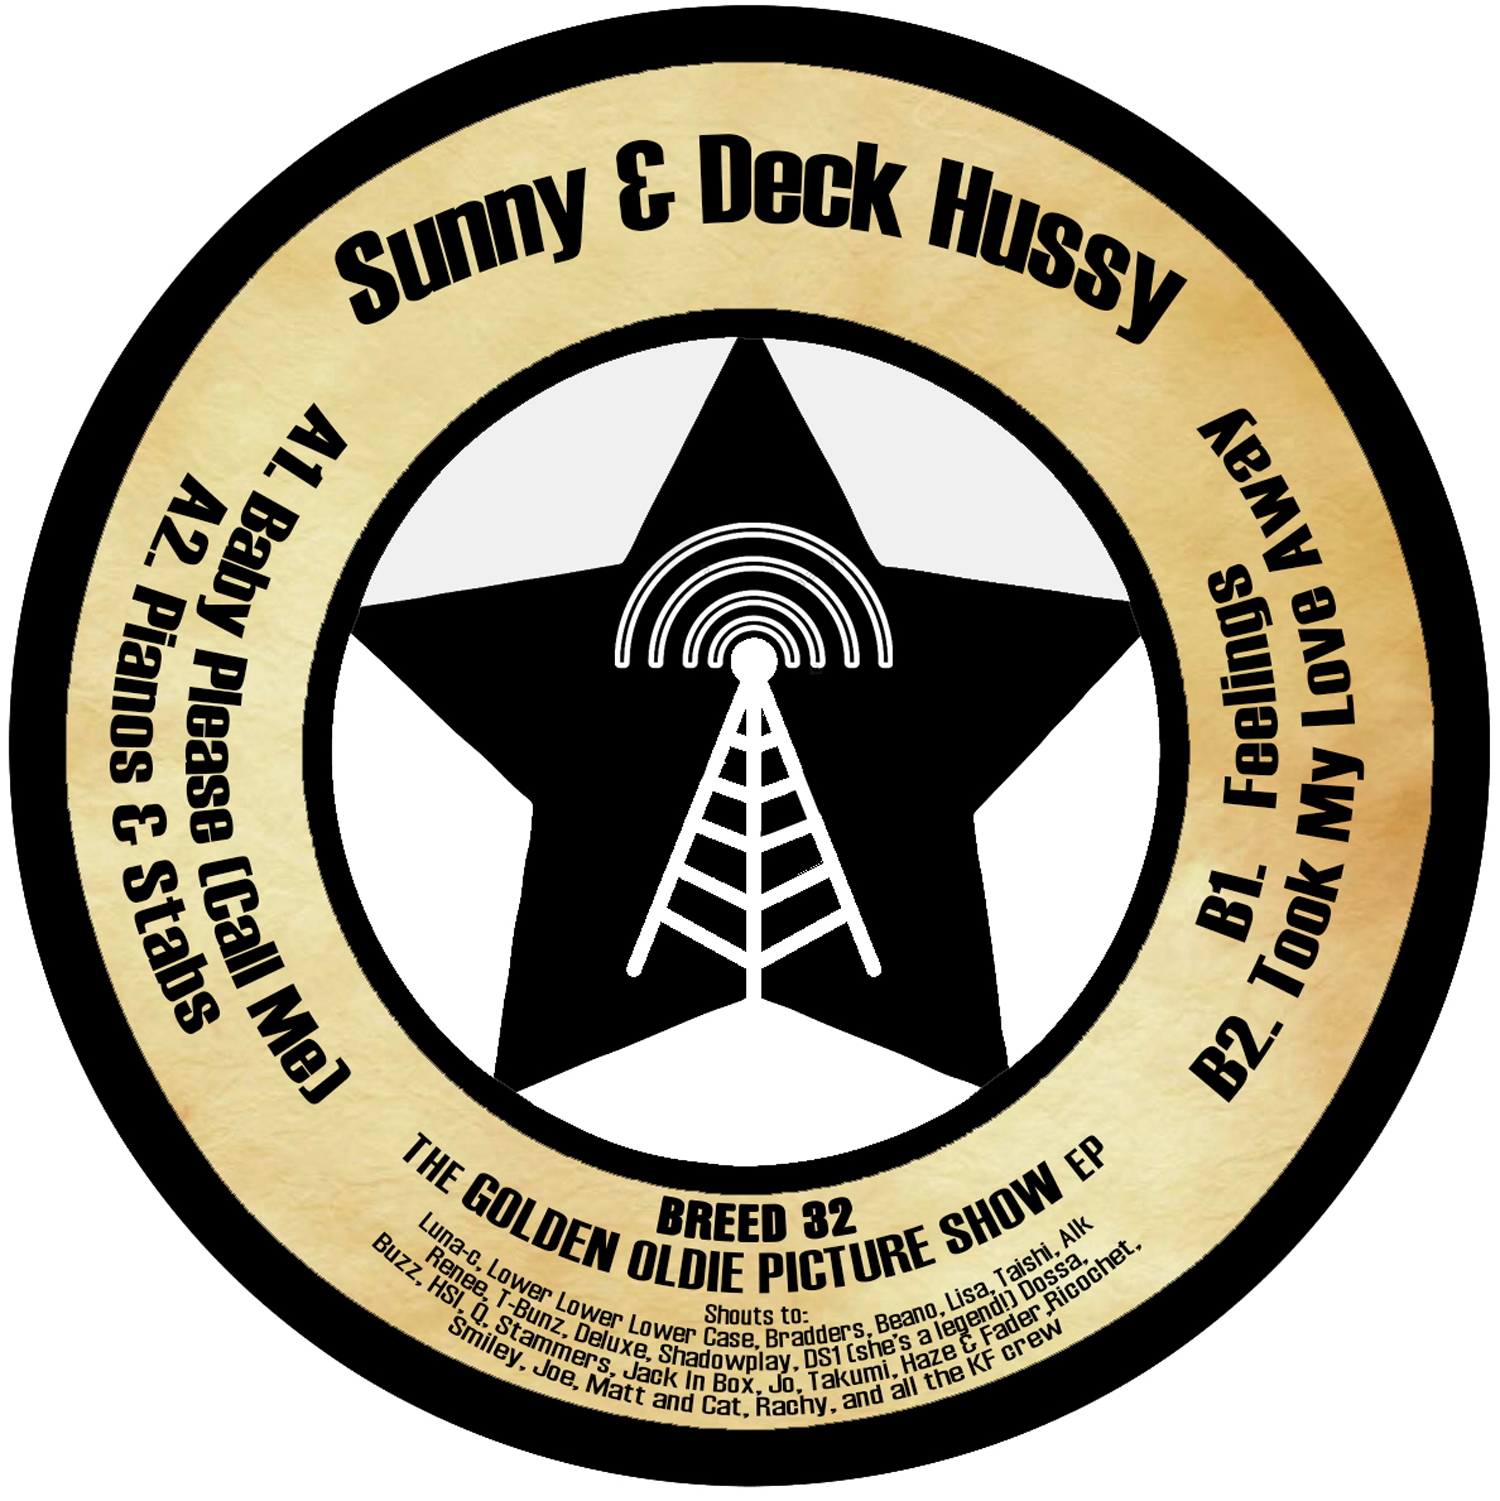 """[BREED32] Sunny & Deck Hussy - The Golden Oldie Picture Show EP (12"""" Vinyl + Digital)"""